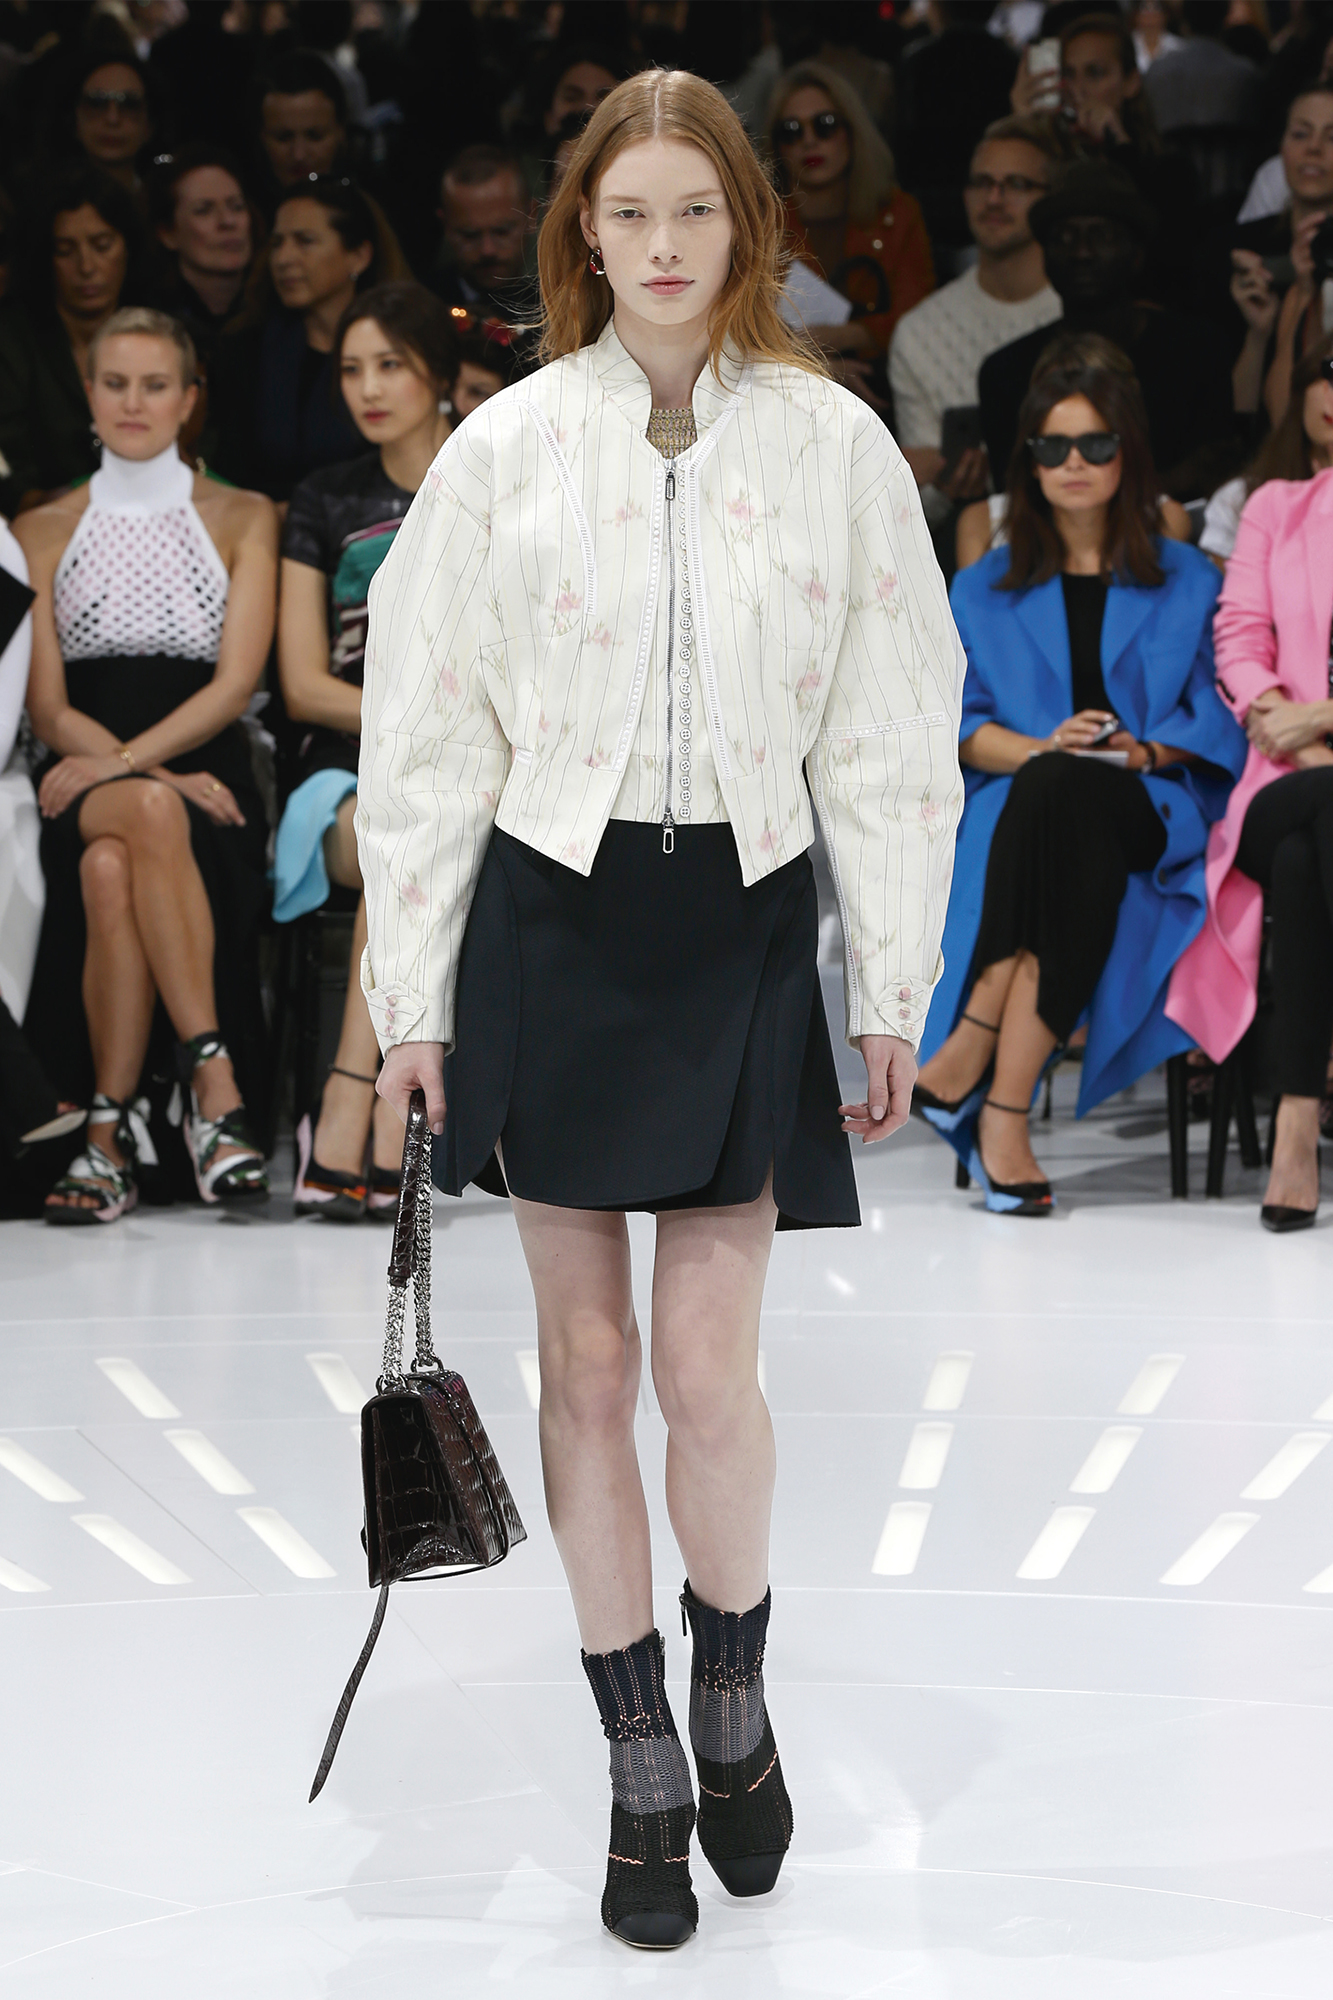 Christian Dior Haute Couture Spring-Summer Ready To Wear Dresses & Accessories Collection 2015-16 (22)